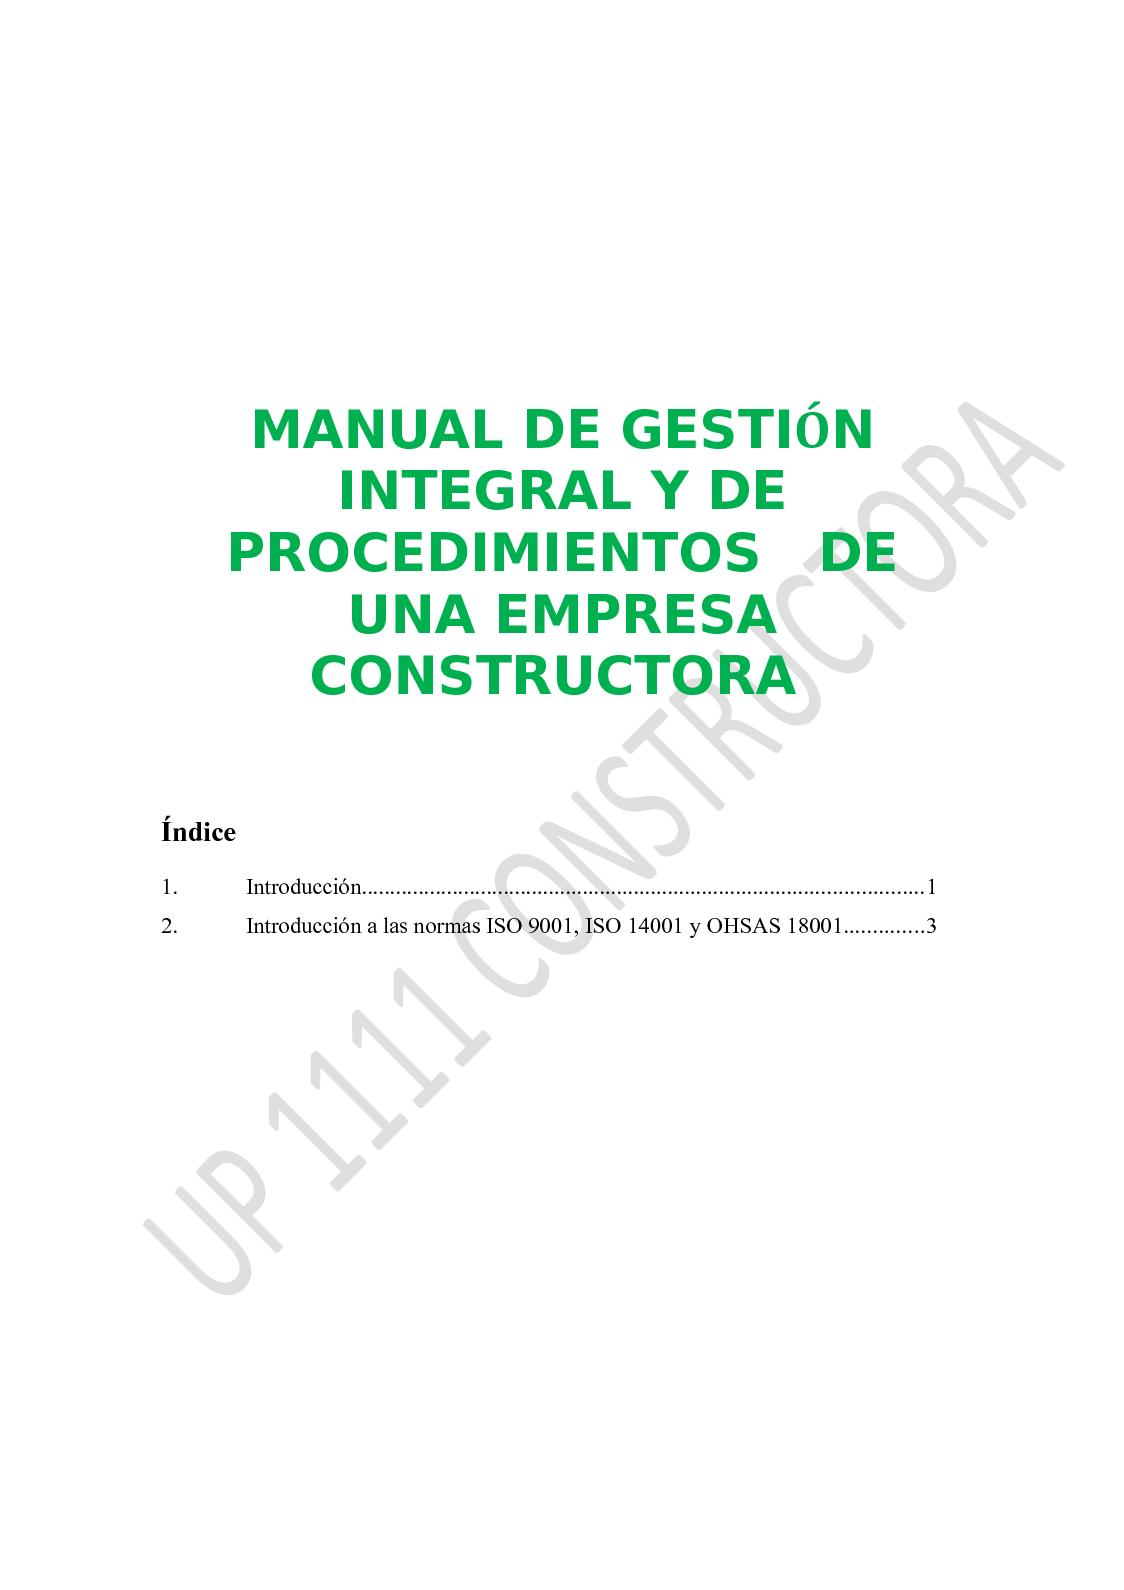 Manual De Gestion Integral Up 1111 Constructora